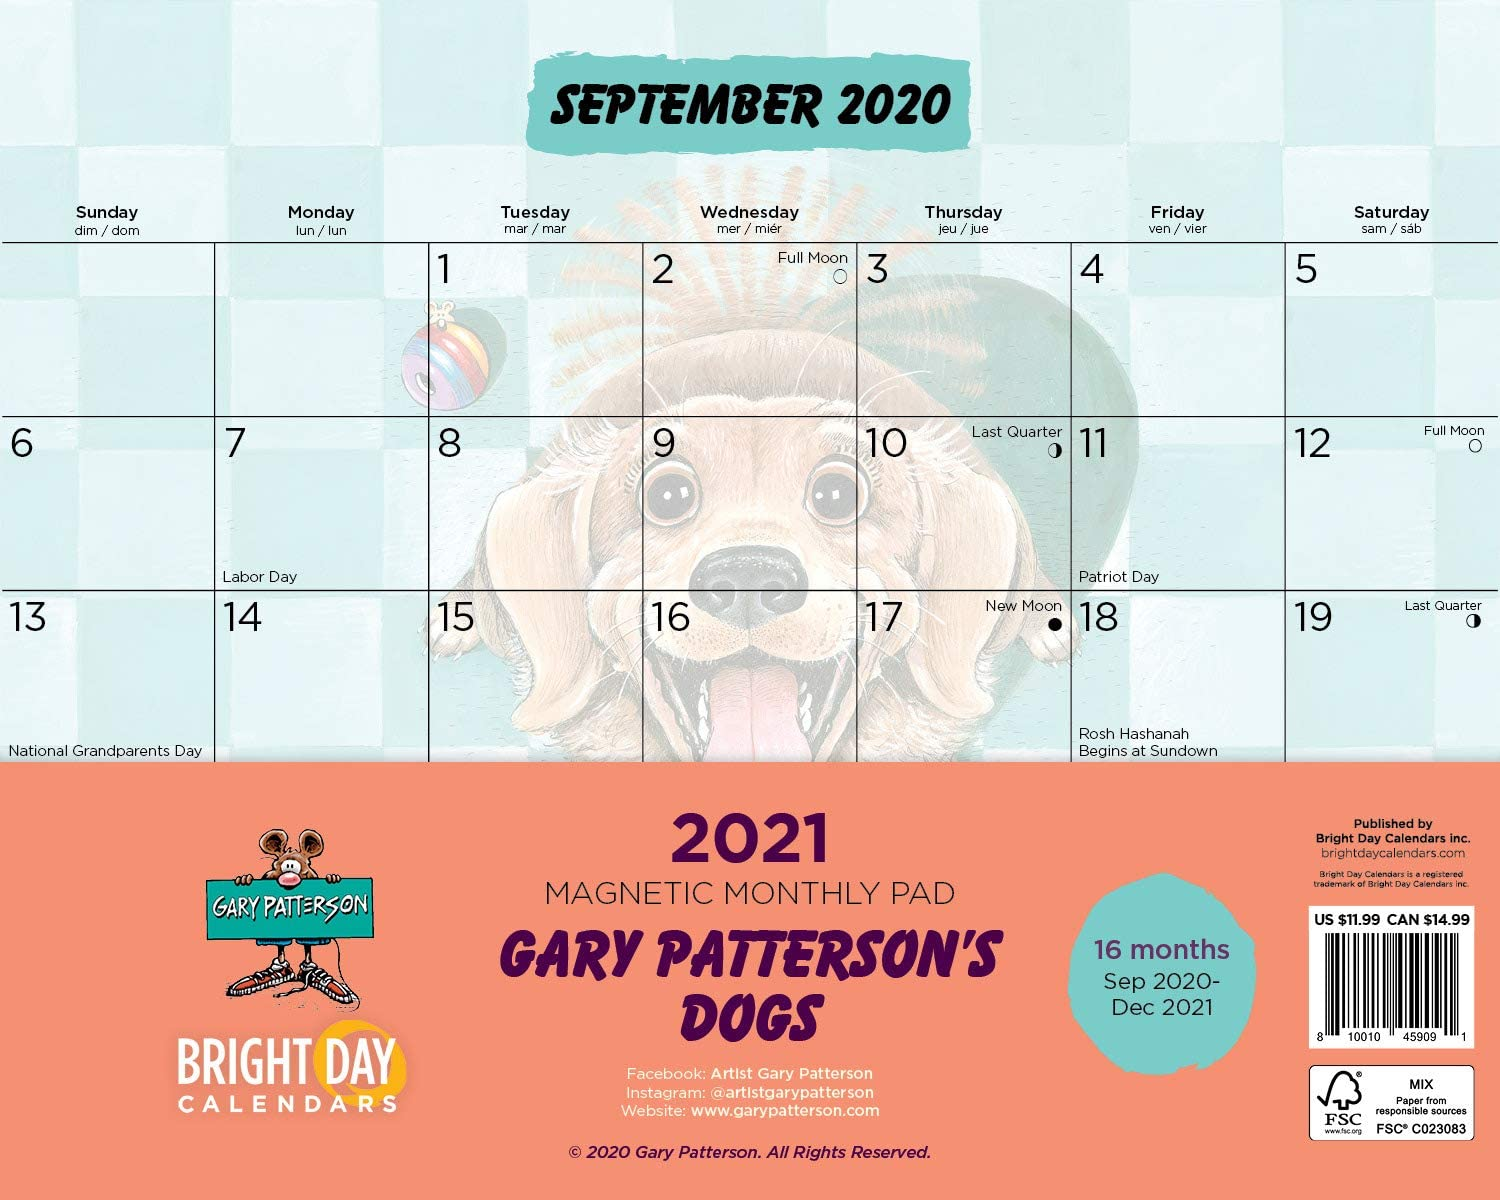 2021 Magnetic Refrigerator Calendar Gary Patterson Wall Calendar Pad by Bright Day, 16 Month 8 x 10 Inch (Dogs)